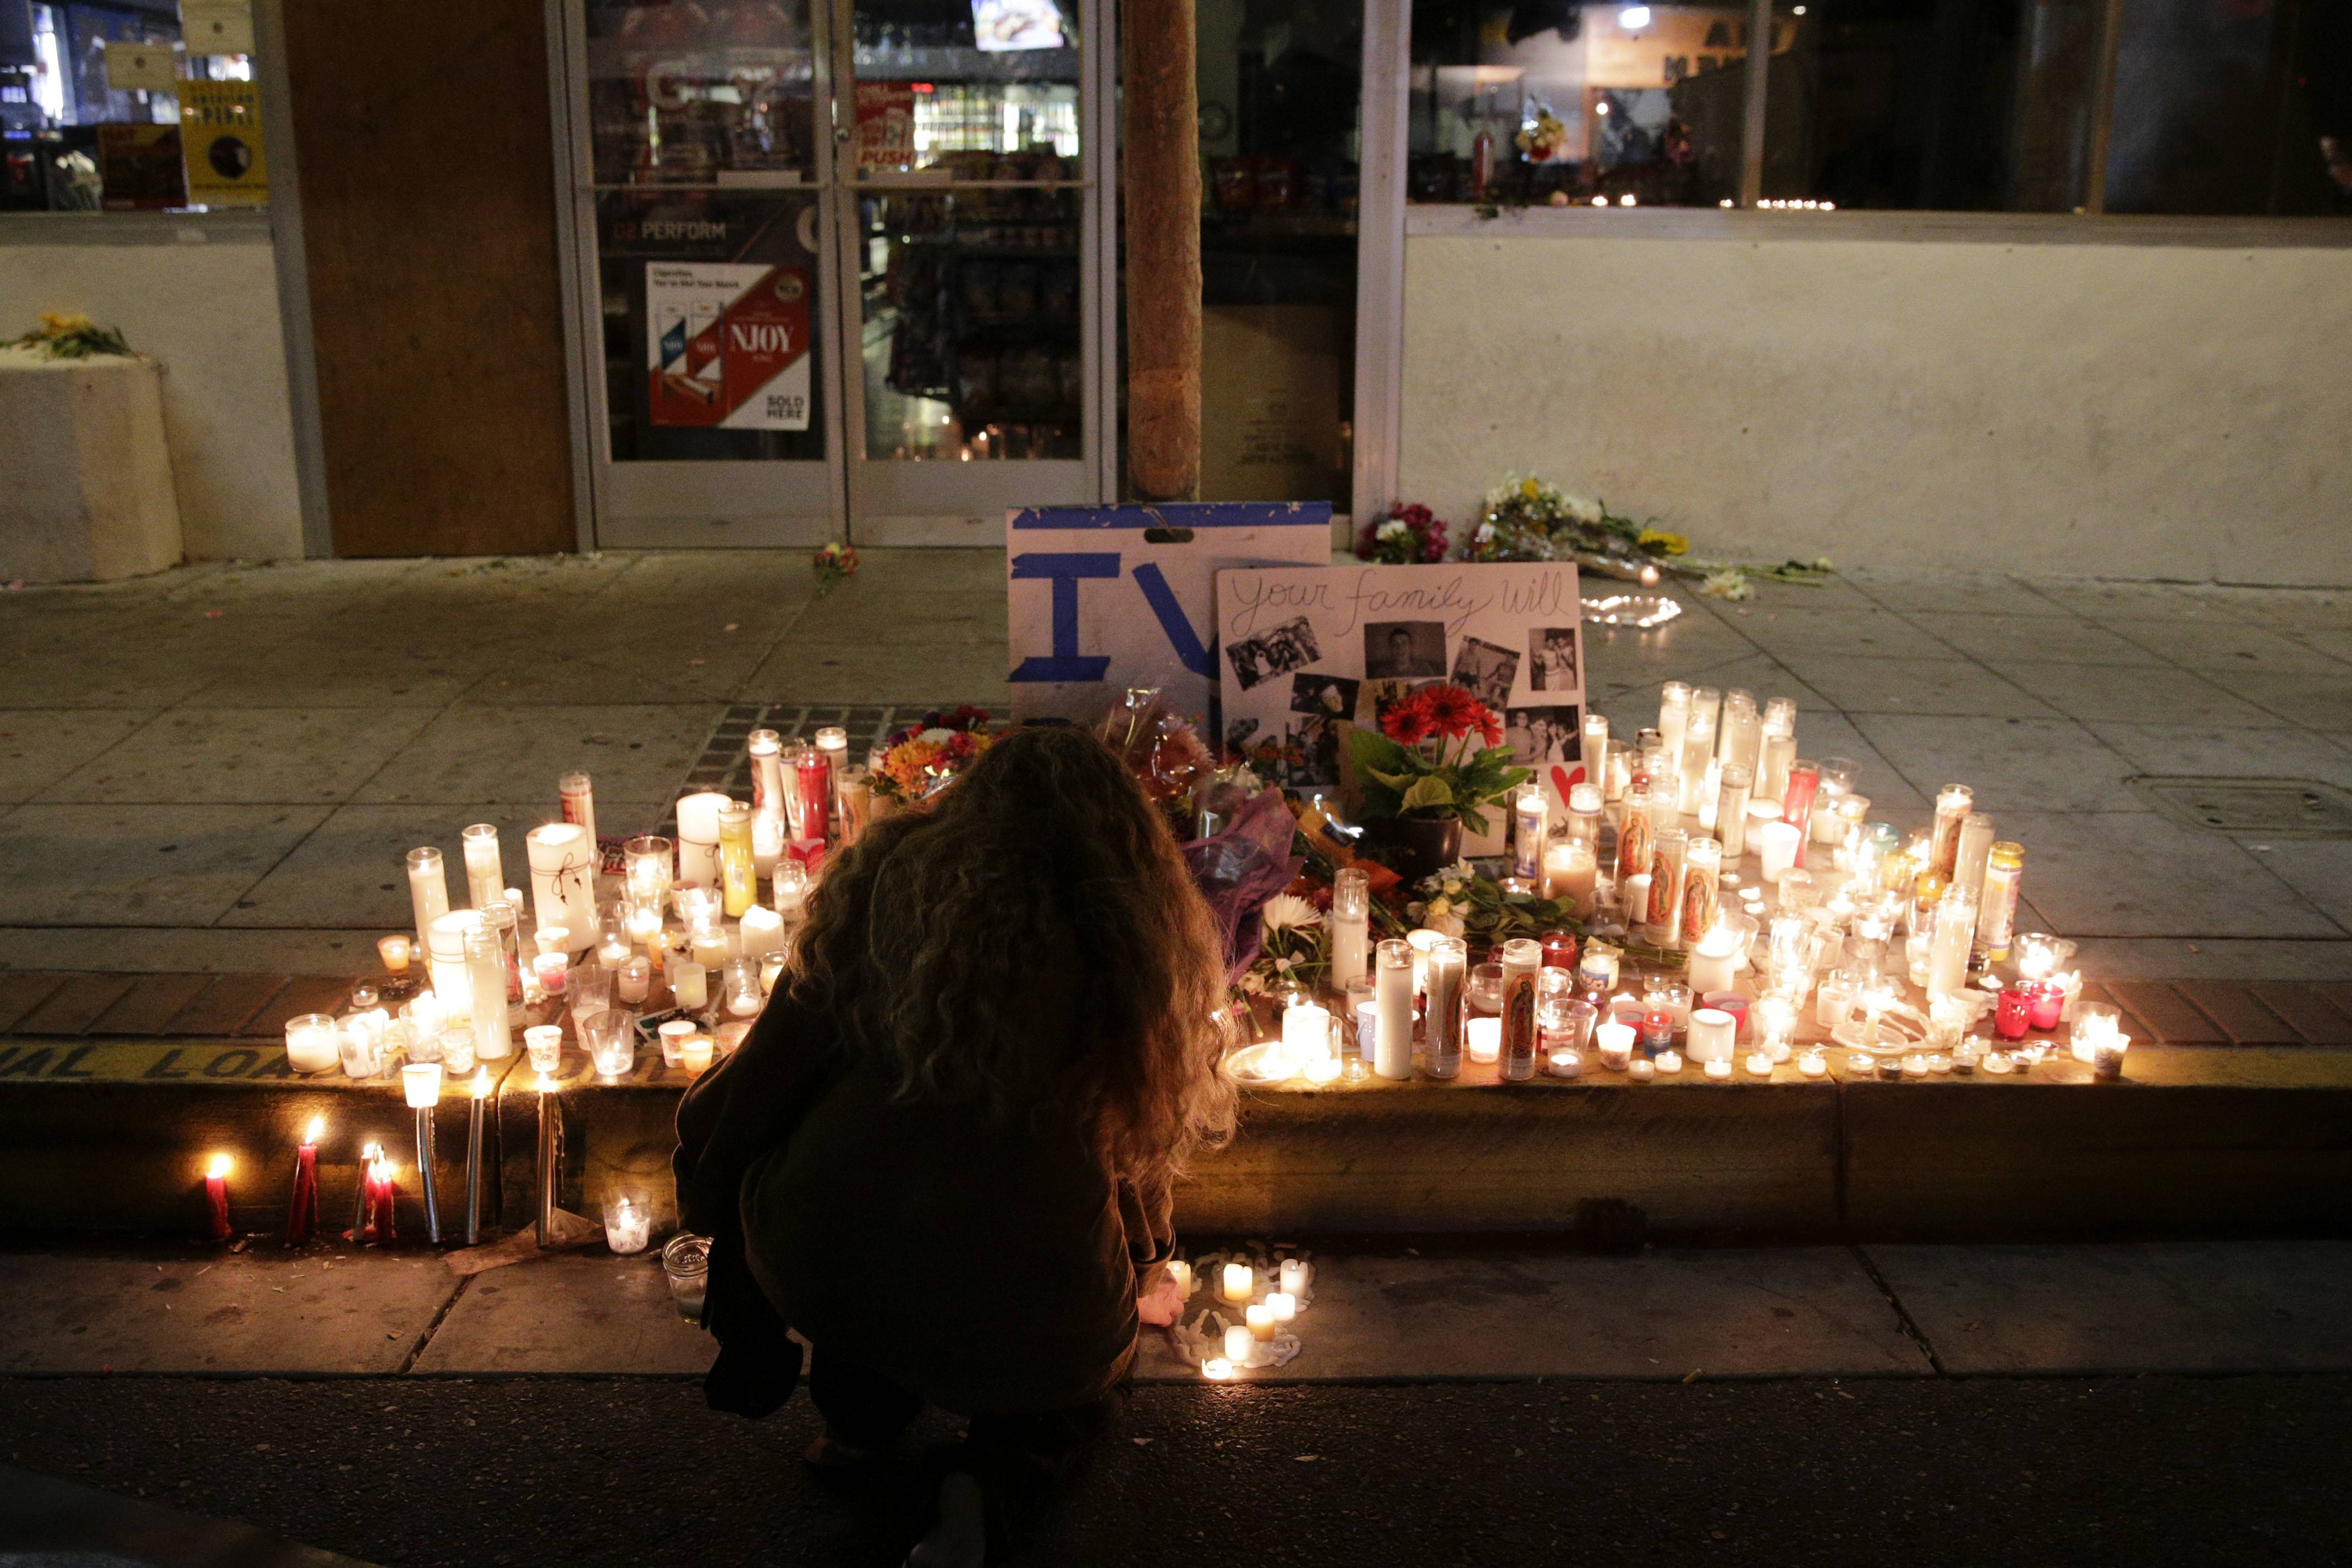 A woman places a candle in front of IV Deli Mart, where par of Friday night's mass shooting took place by a drive-by shooter, on Saturday, May 24, 2014, in the beach community of Isla Vista, Calif. Sheriff's officials say Elliot Rodger, 22, went on a rampage near the University of California, Santa Barbara, stabbing three people to death at his apartment before shooting and killing three more in a crime spree through a nearby neighborhood.